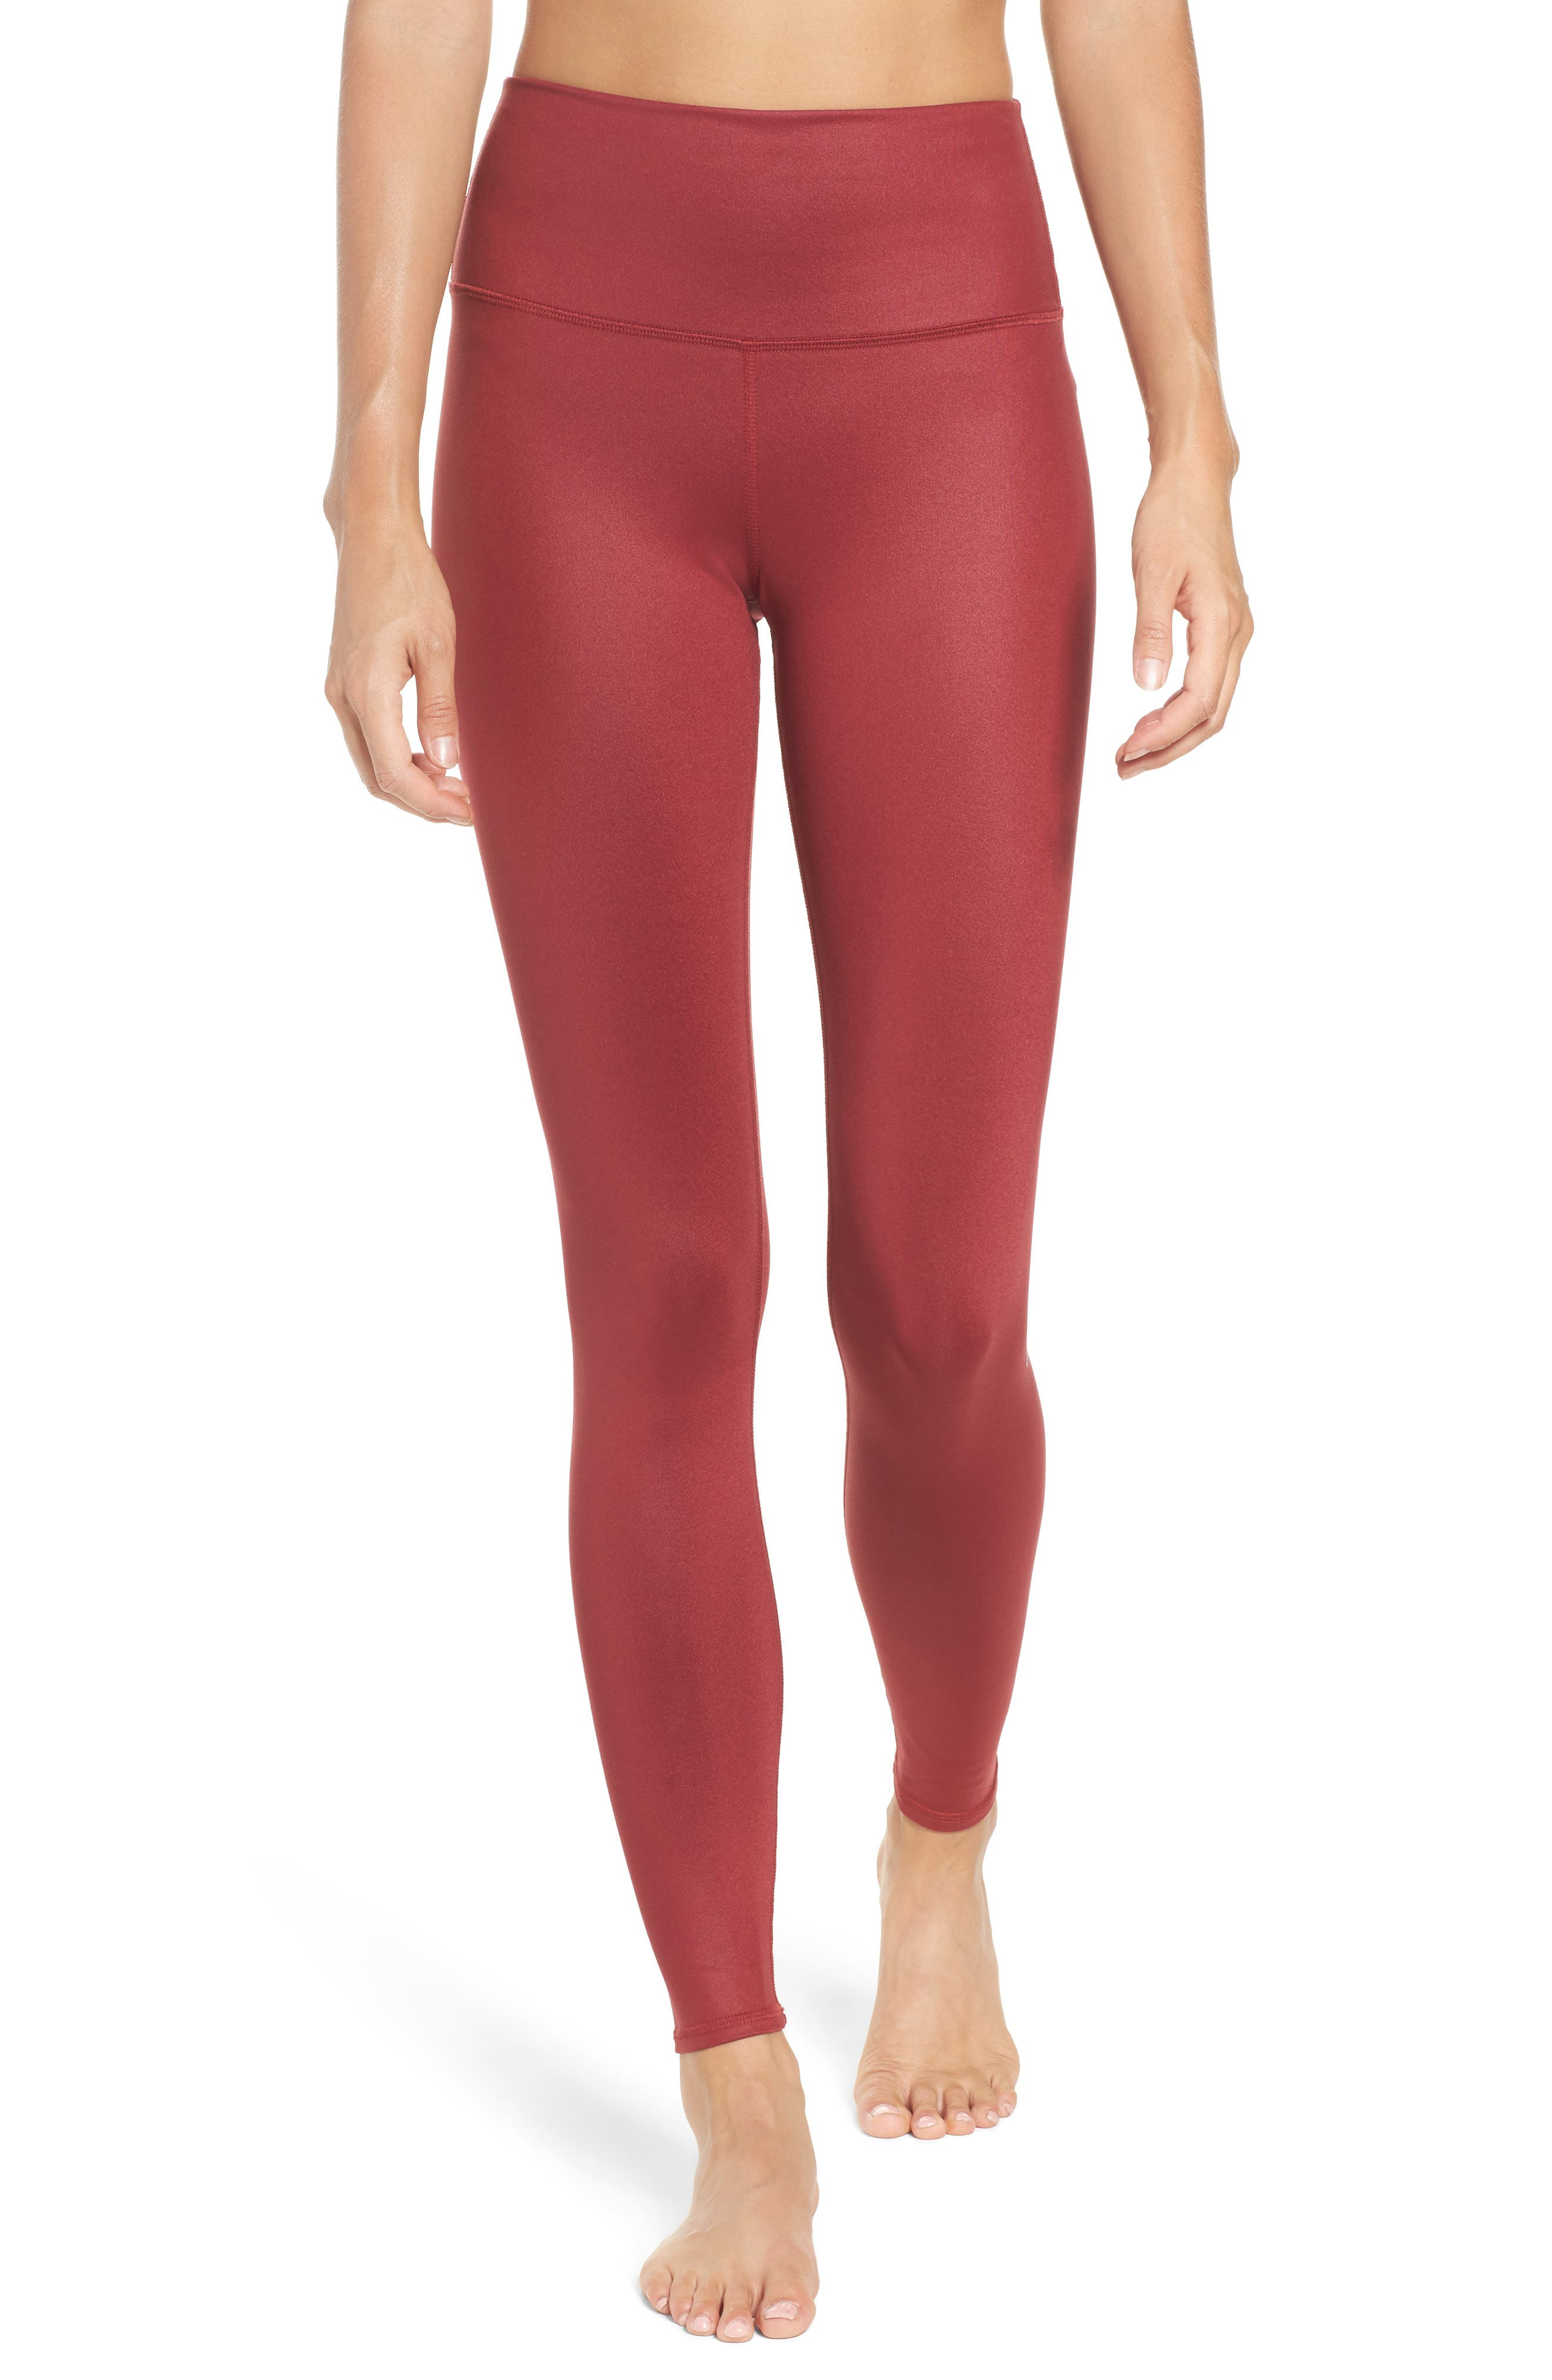 Alo Airbrush High Waist Leggings